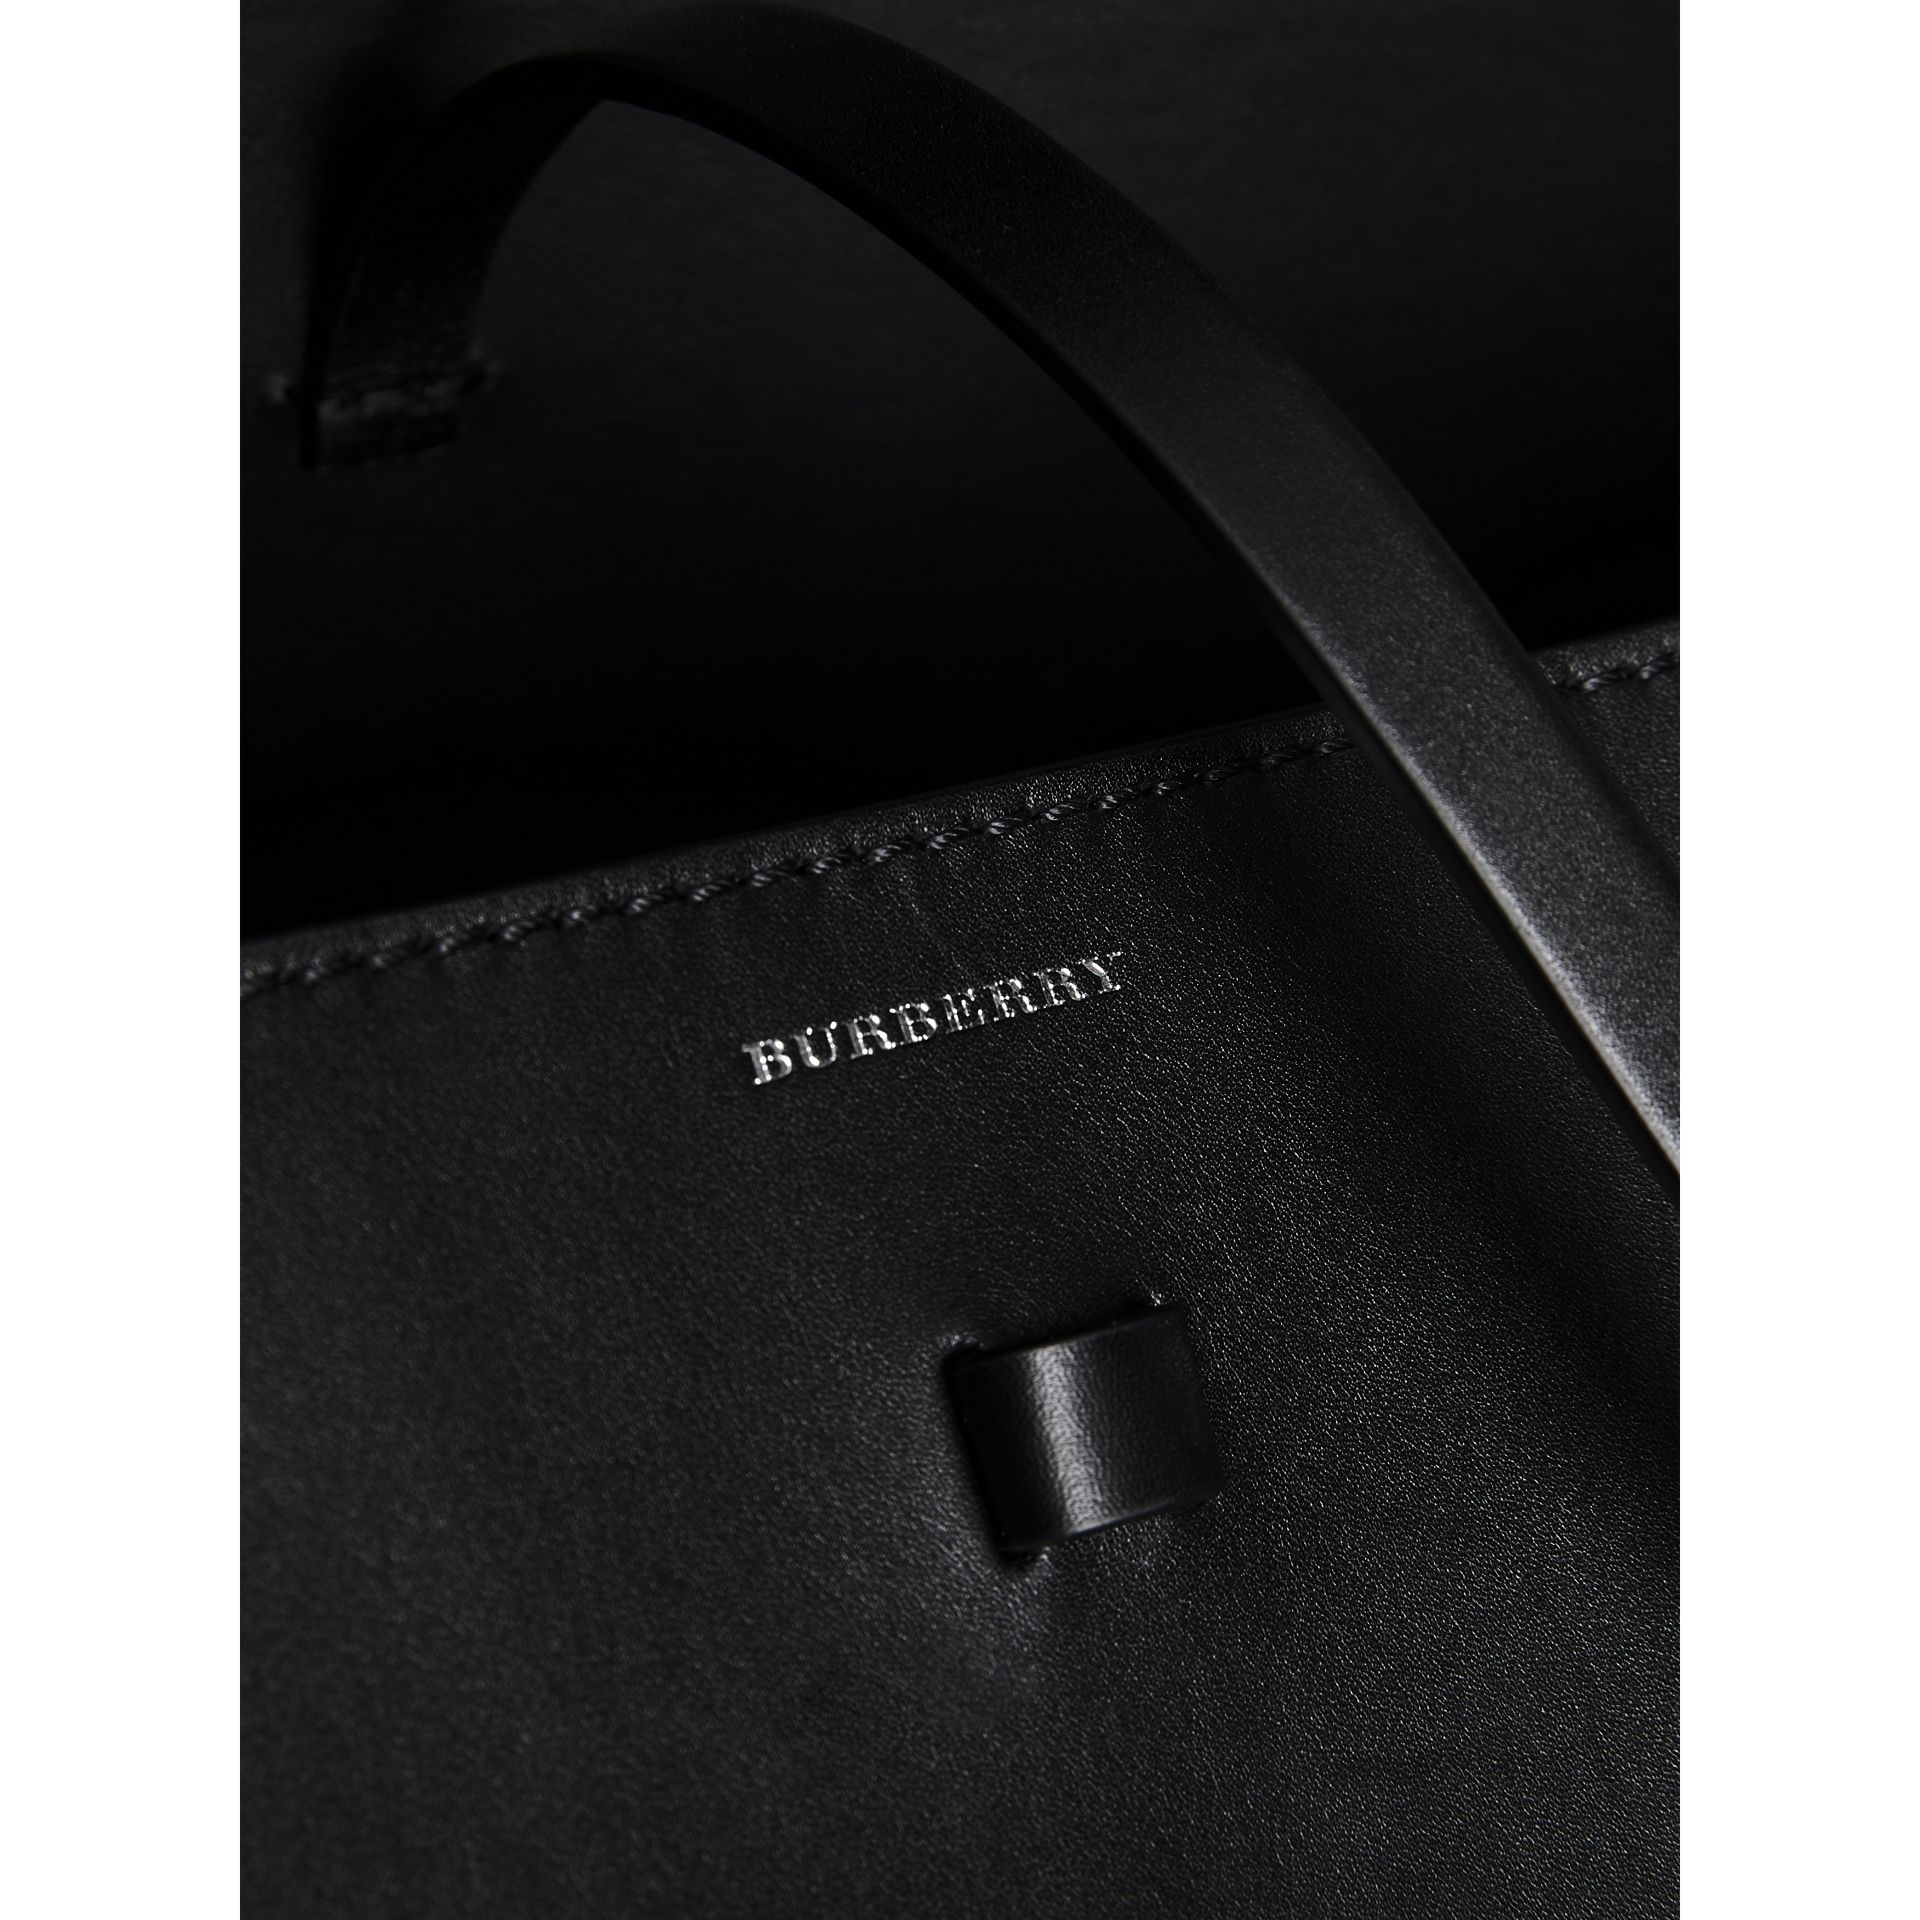 The Large Cotton Linen and Leather Bucket Bag in Black - Women | Burberry - gallery image 1